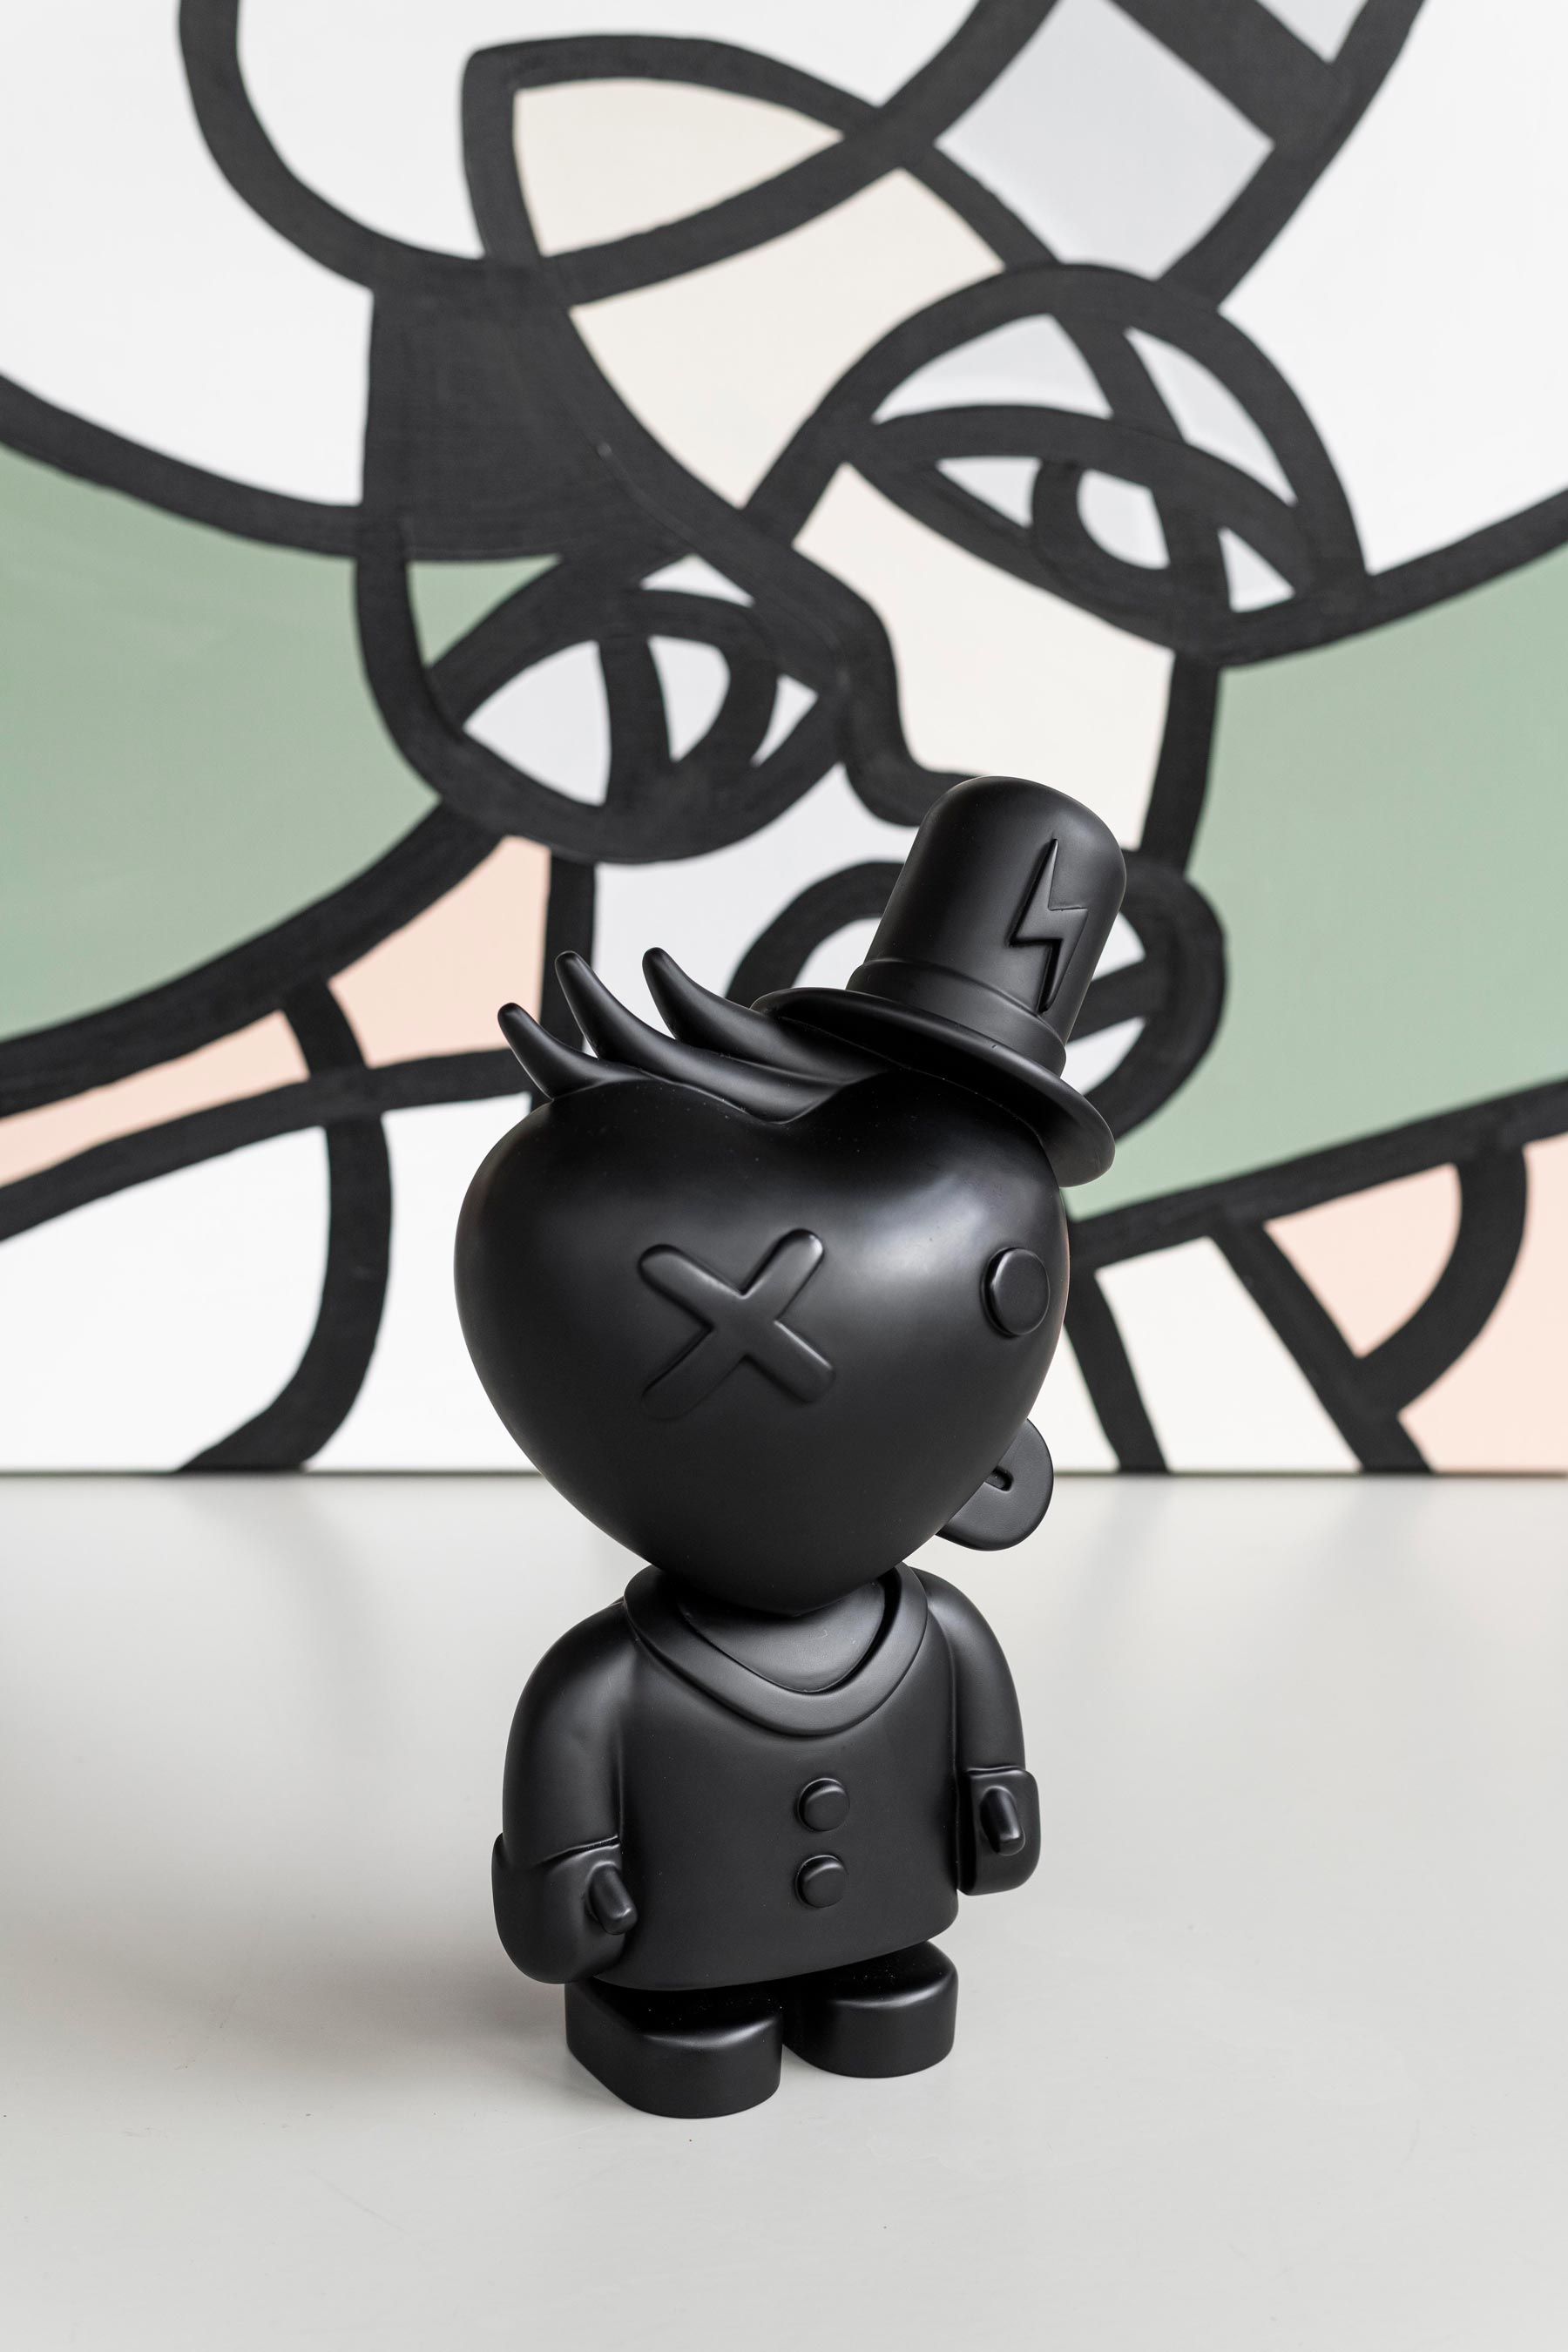 Mr. pablitto art toy by artist Pablo Lucker